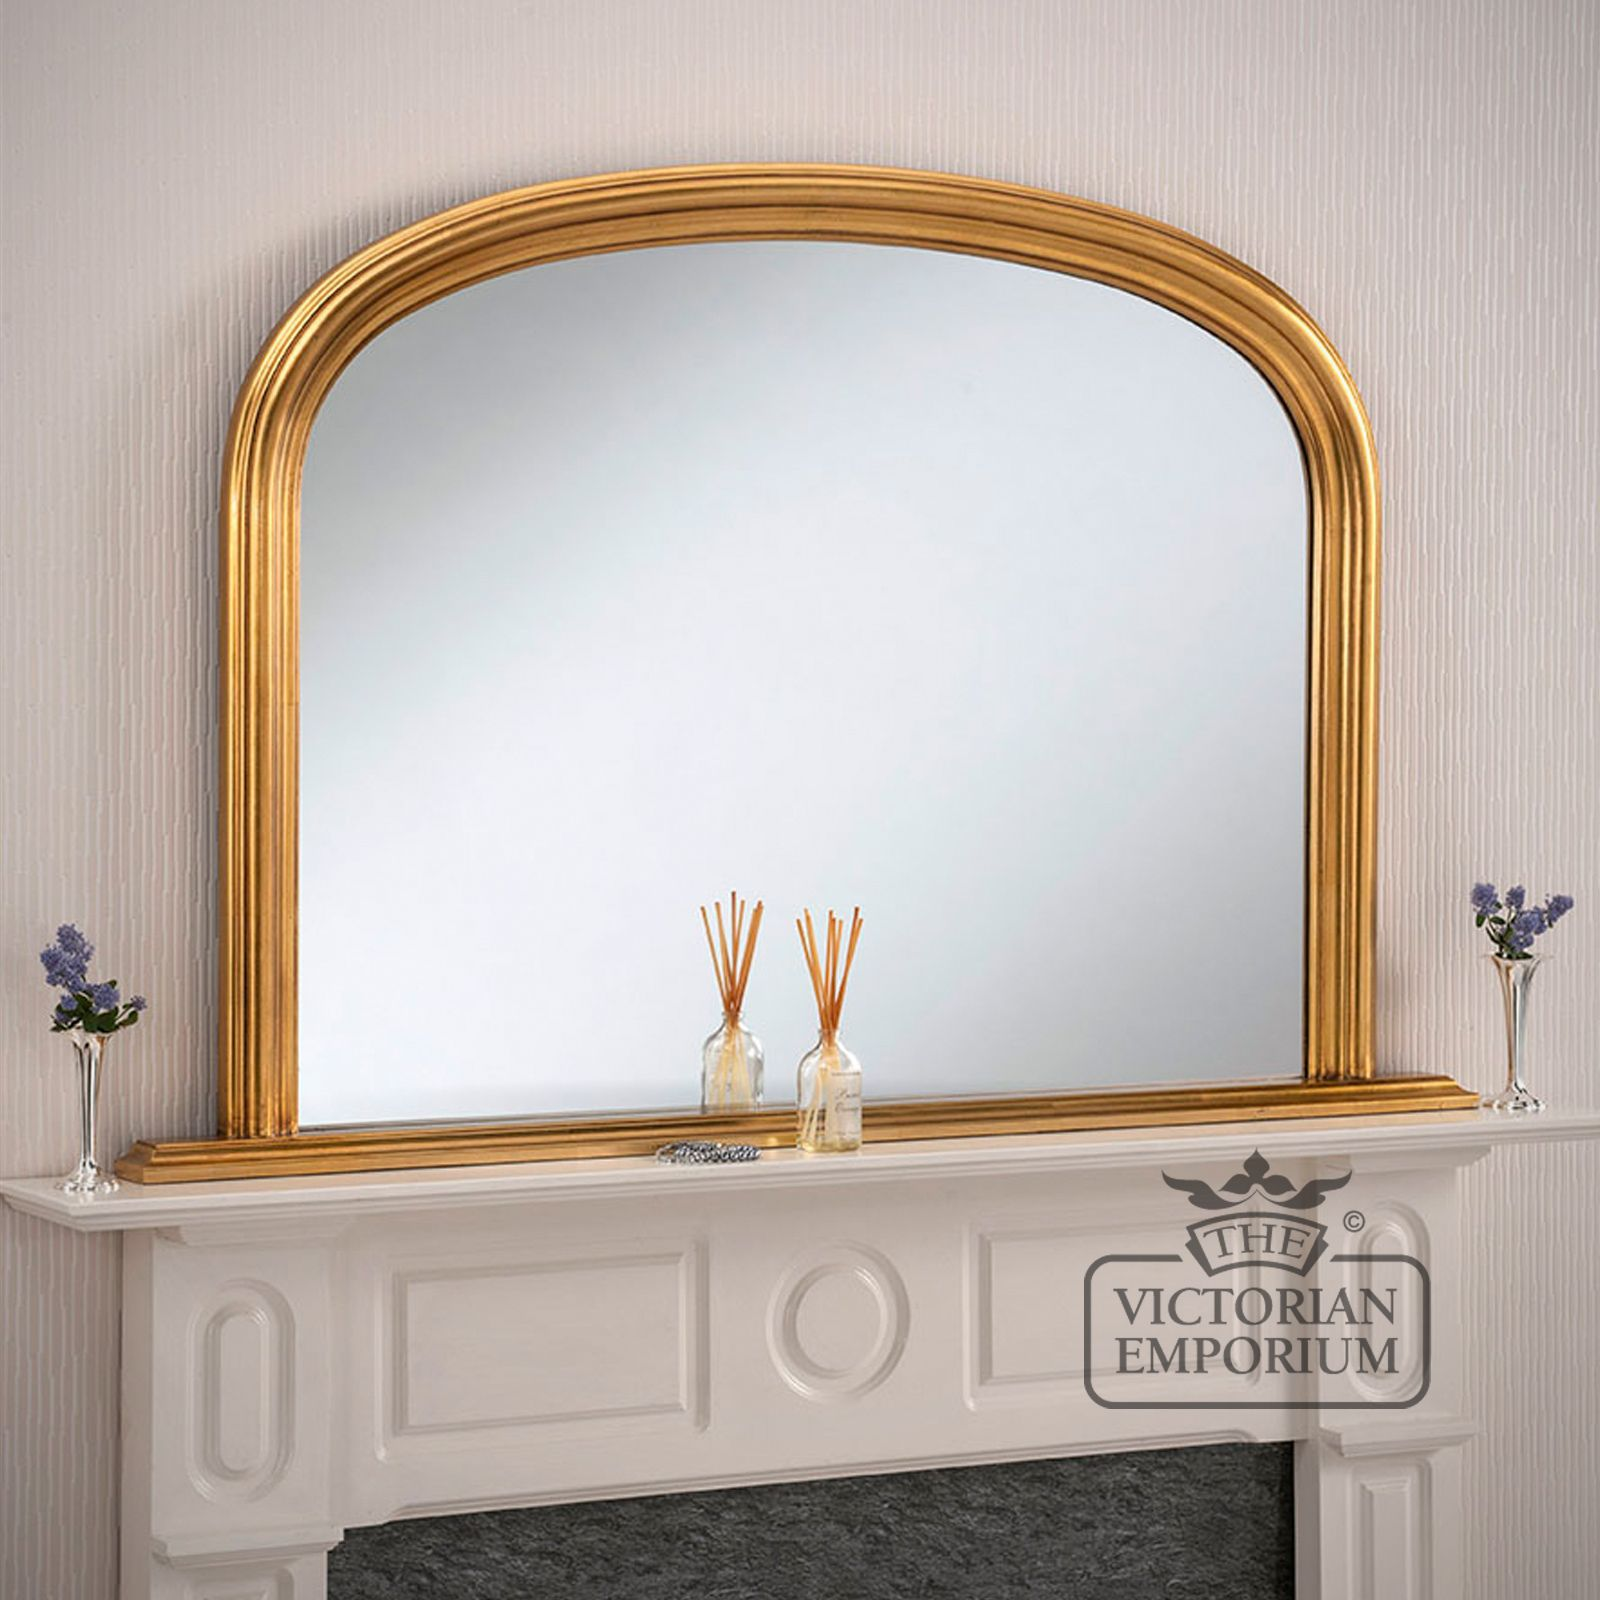 Winchester overmantel mirror with gold frame 119x79cm for Fireplace mirrors